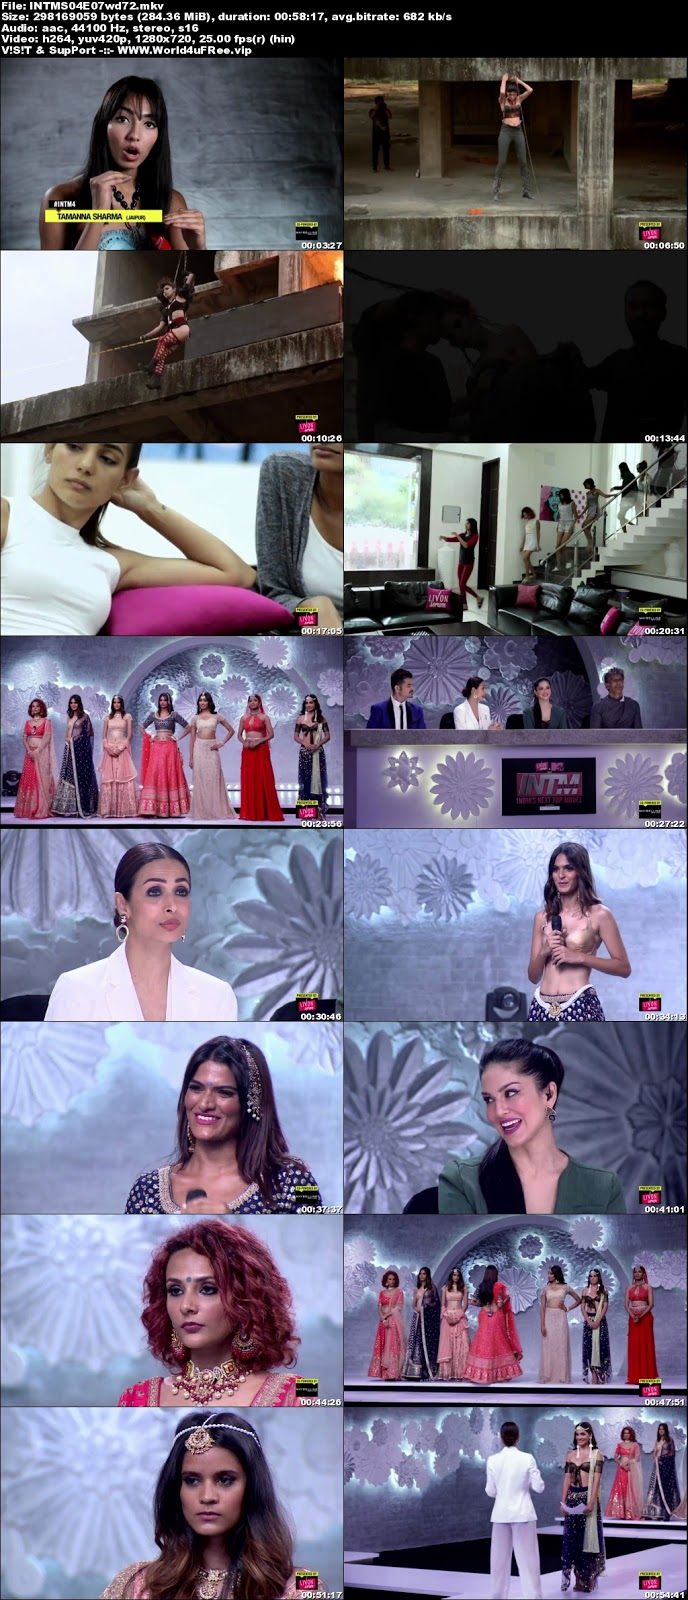 India's Next Top Model S04 Episode 07 720p WEBRip 200Mb world4ufree.fun tv show India's Next Top Model S04 2018 hindi MTV tv show compressed small size free download or watch online at world4ufree.fun